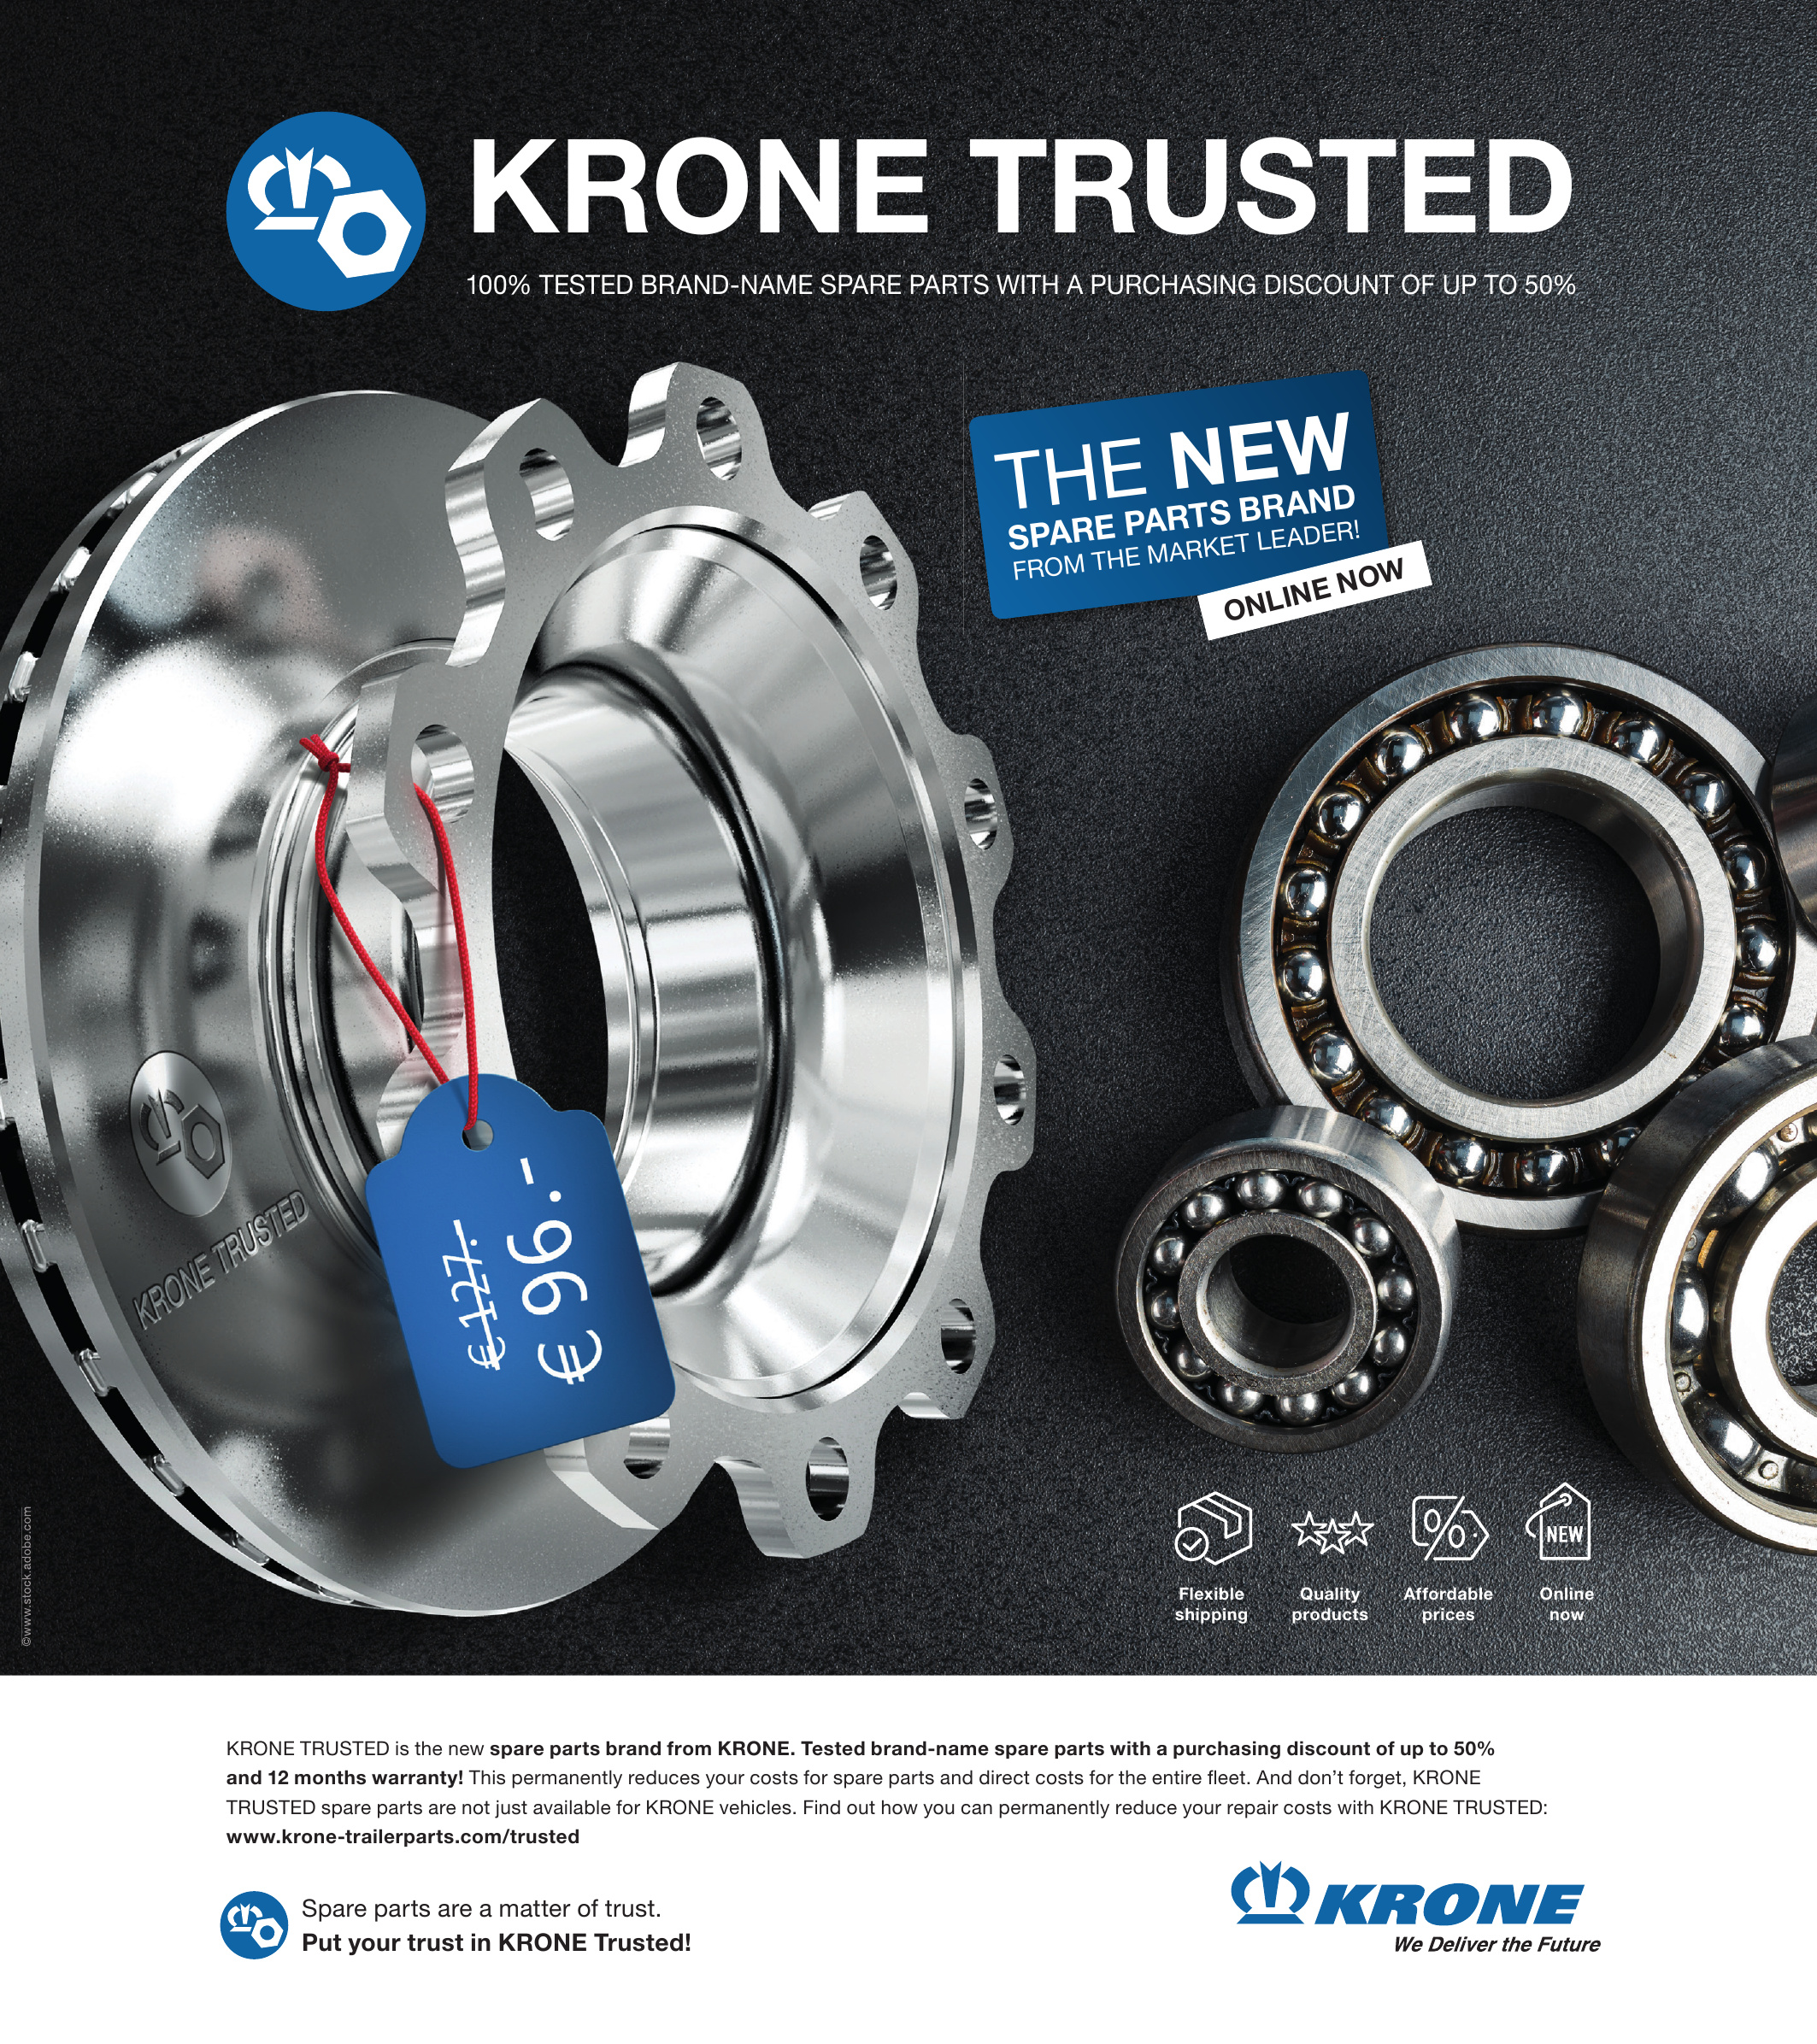 KRONE TRUSTED